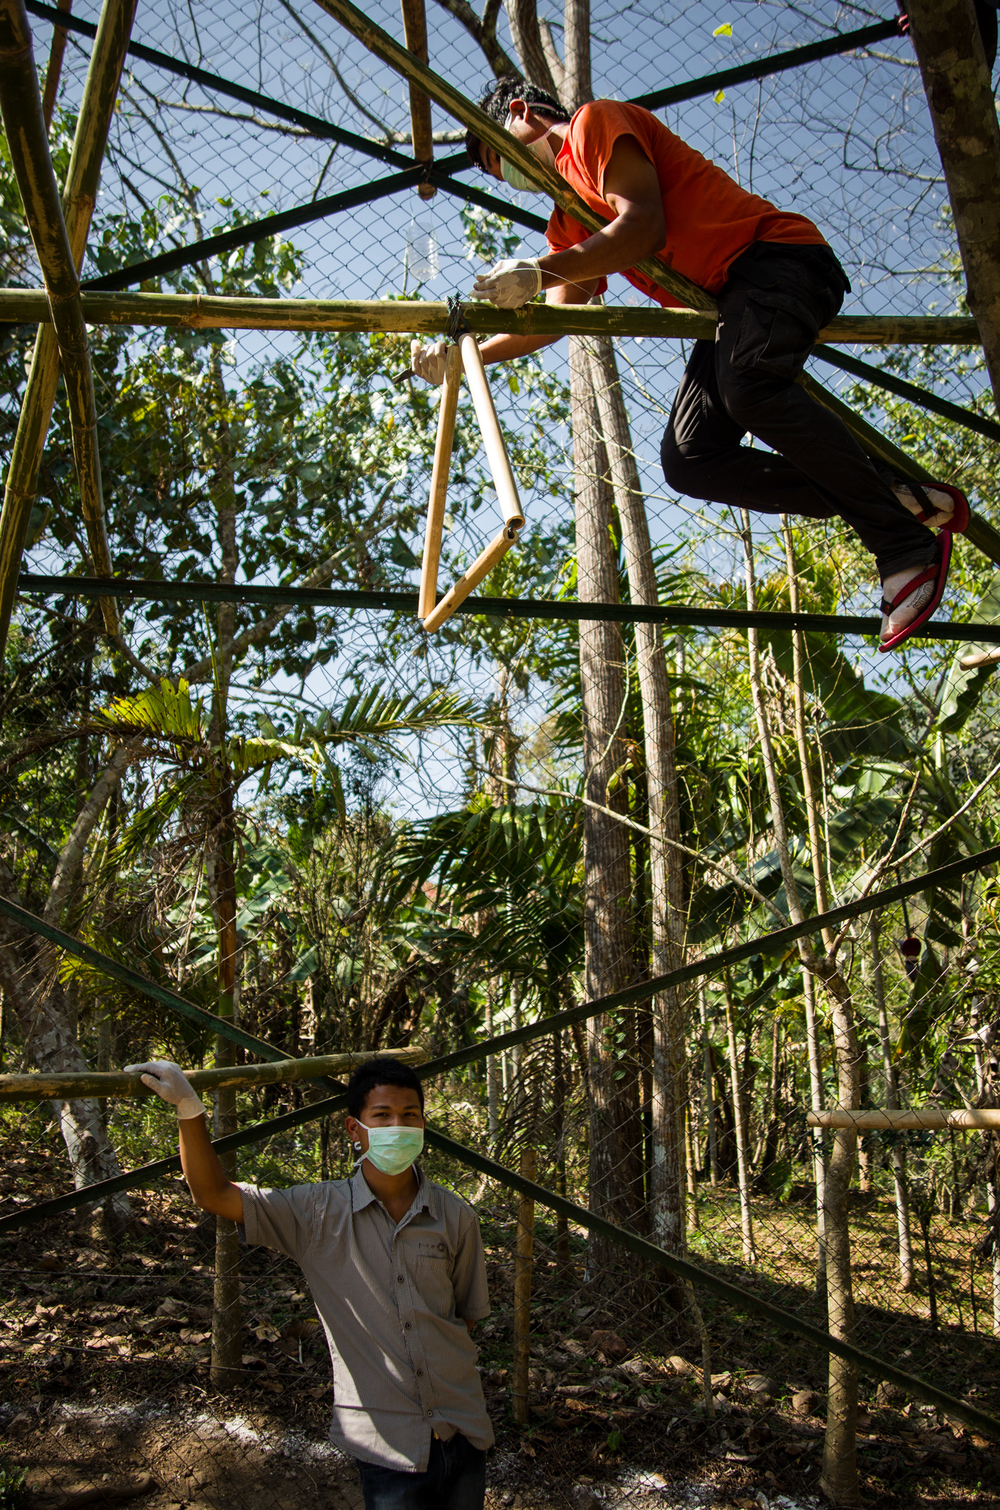 Sengrang (standing) and Tangrik repair bamboo swings.